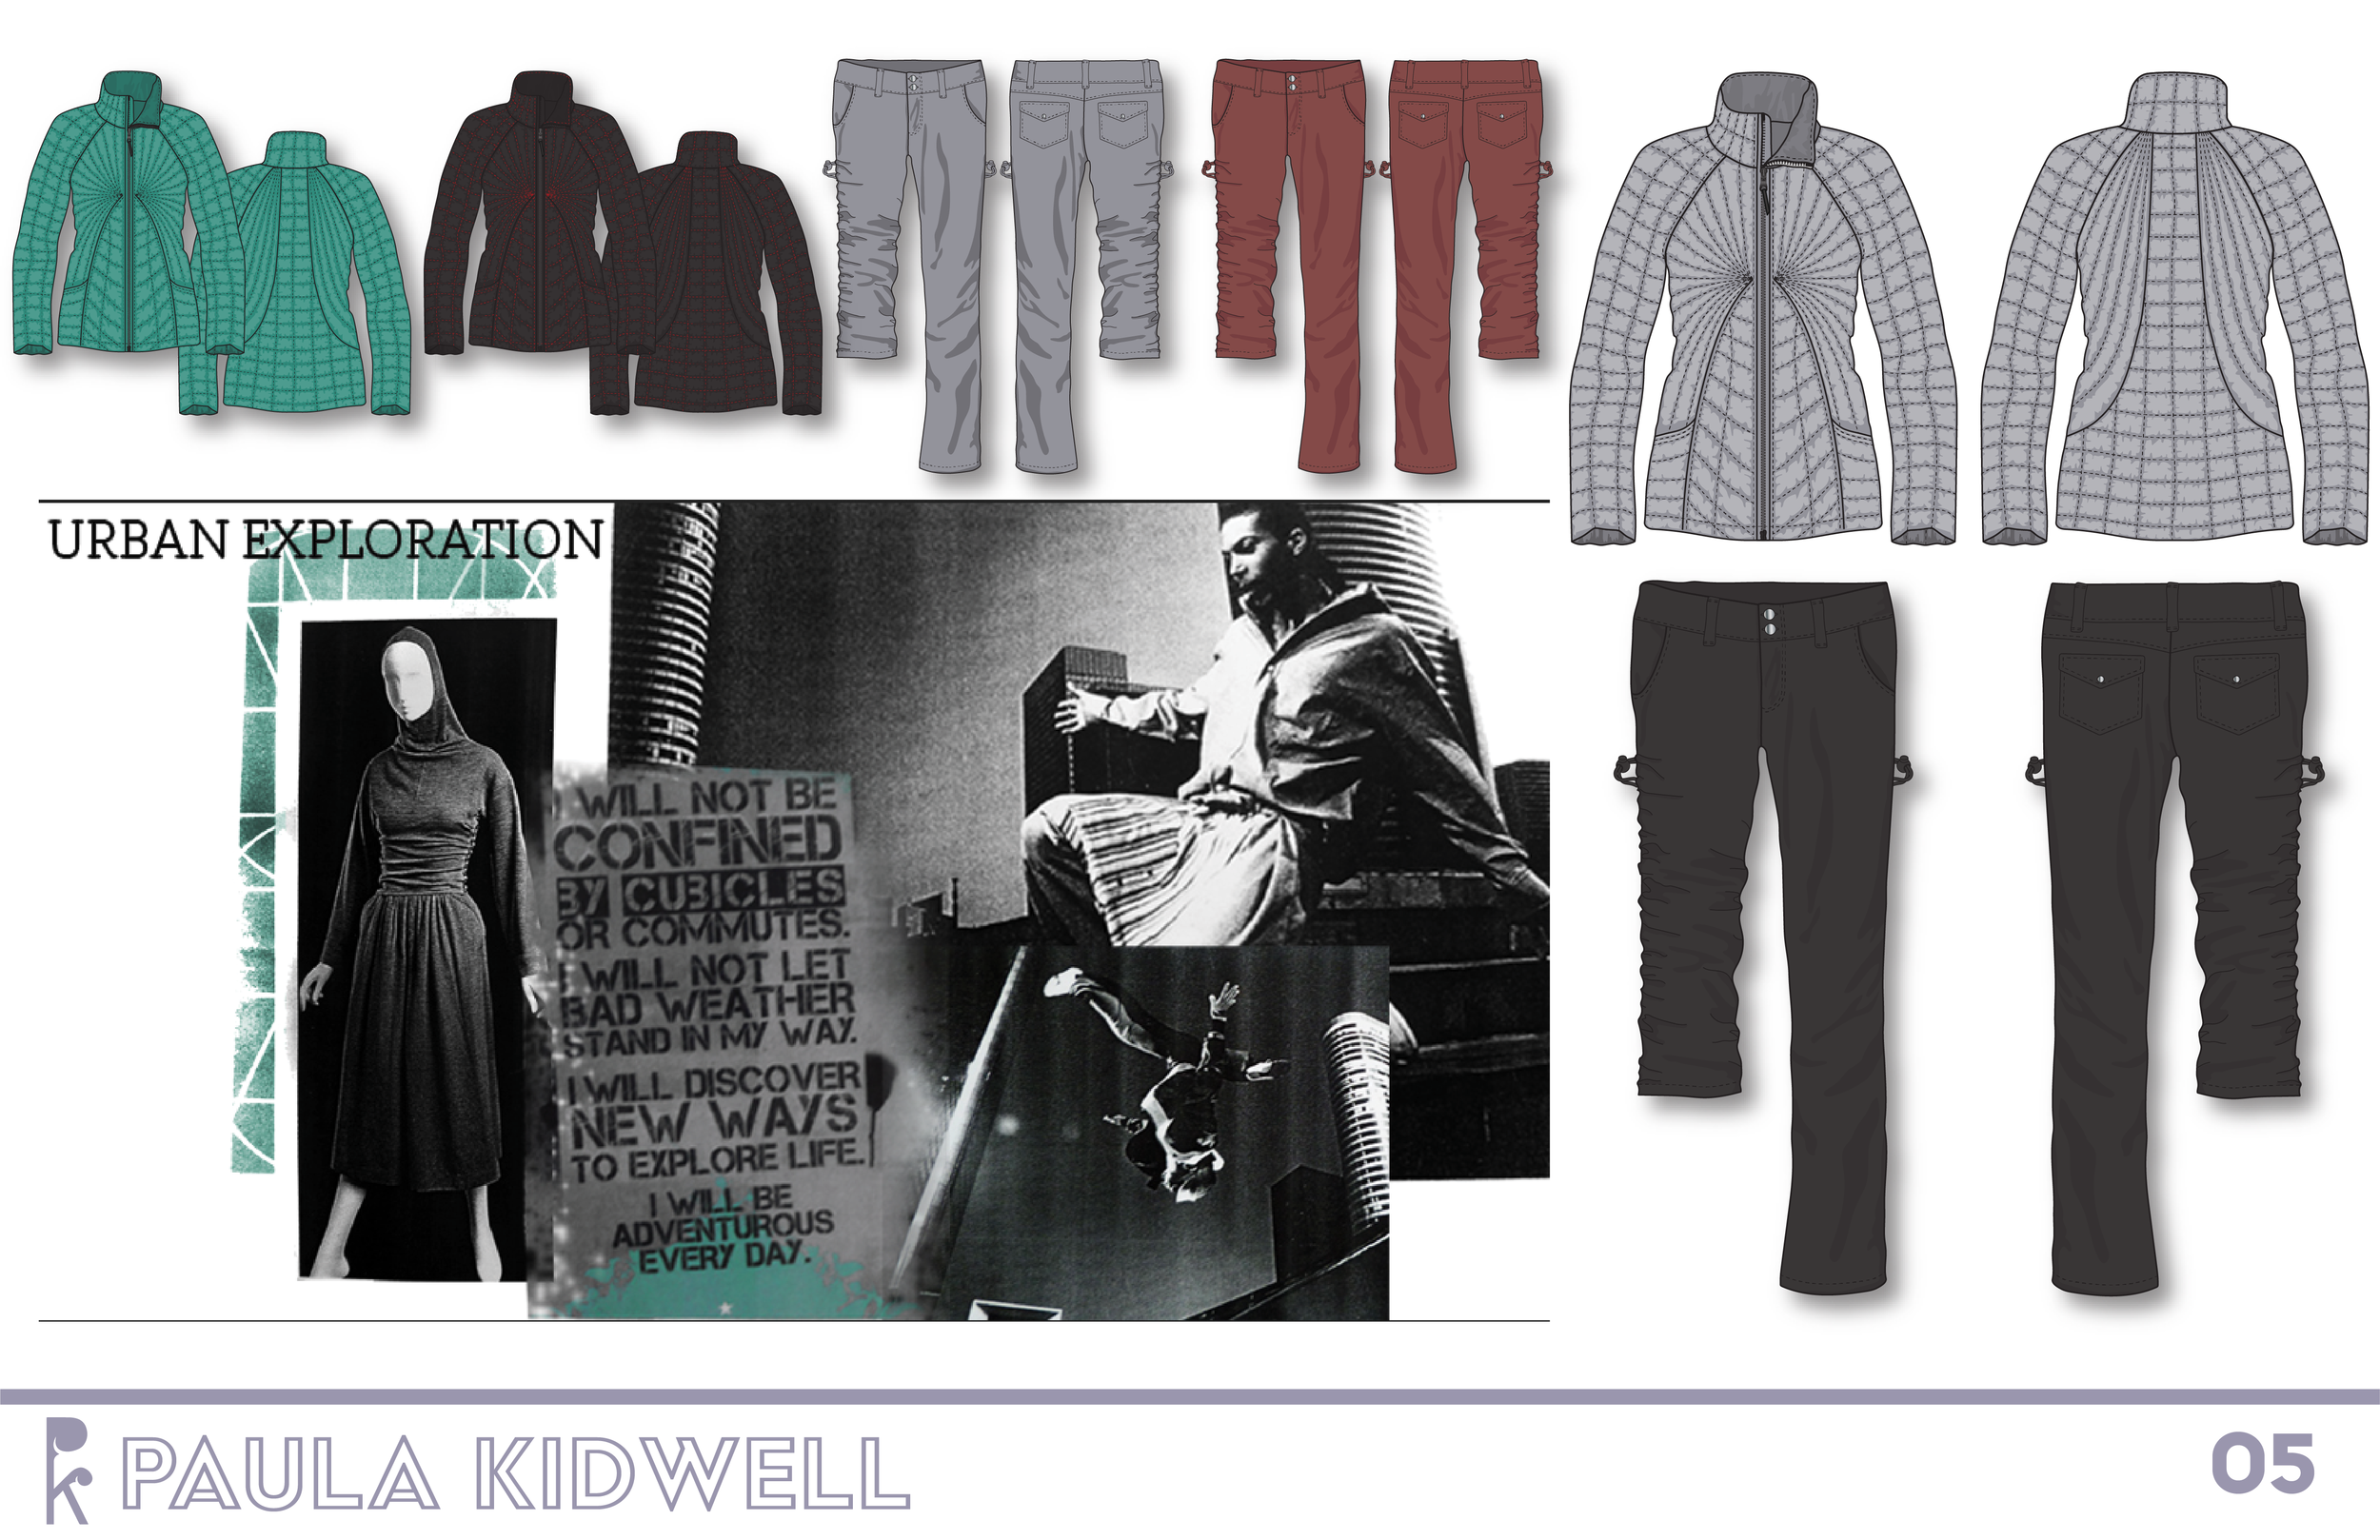 PKIDWELL_05 ACTIVE - 02.png